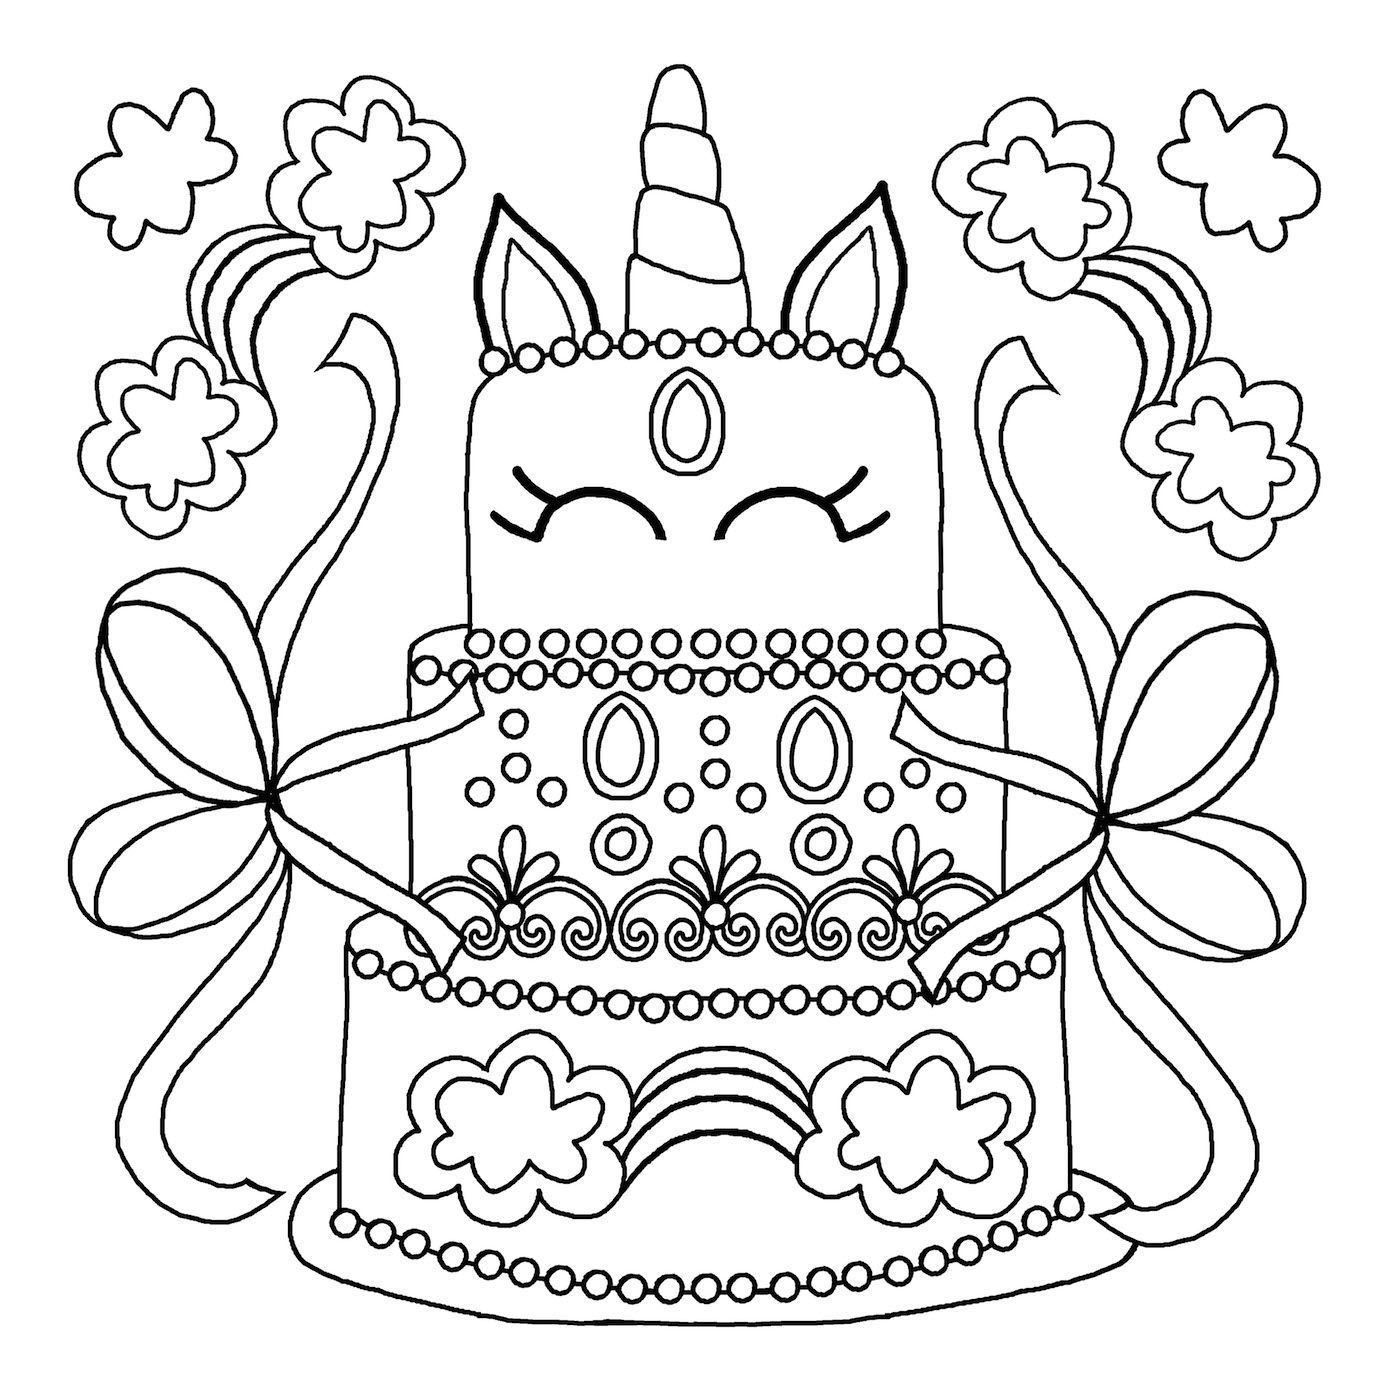 Printable Unicorn Coloring Pages Ideas For Kids is part of Unicorn coloring pages, Coloring pages for kids, Coloring sheets for kids, Unicorn printables, Unicorn pictures to color, Fox coloring page - Find out printable Unicorn coloring pages here for free  You could browse more than 30 Unicorn image to color  See also our large collection of coloring pages